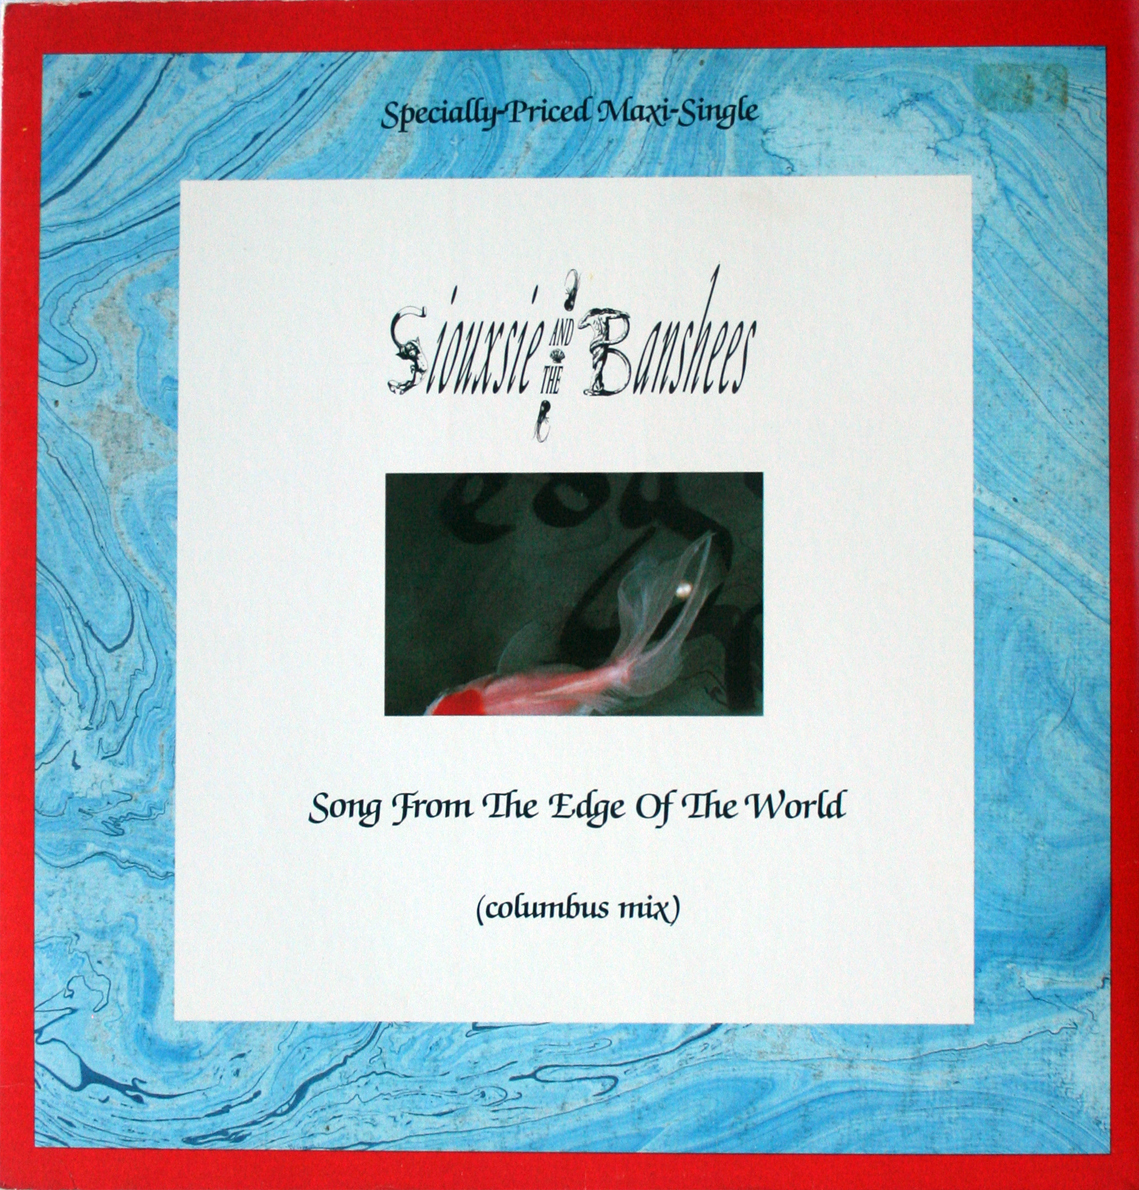 Siouxsie & the Banshees - Songs from the Edge of the World E